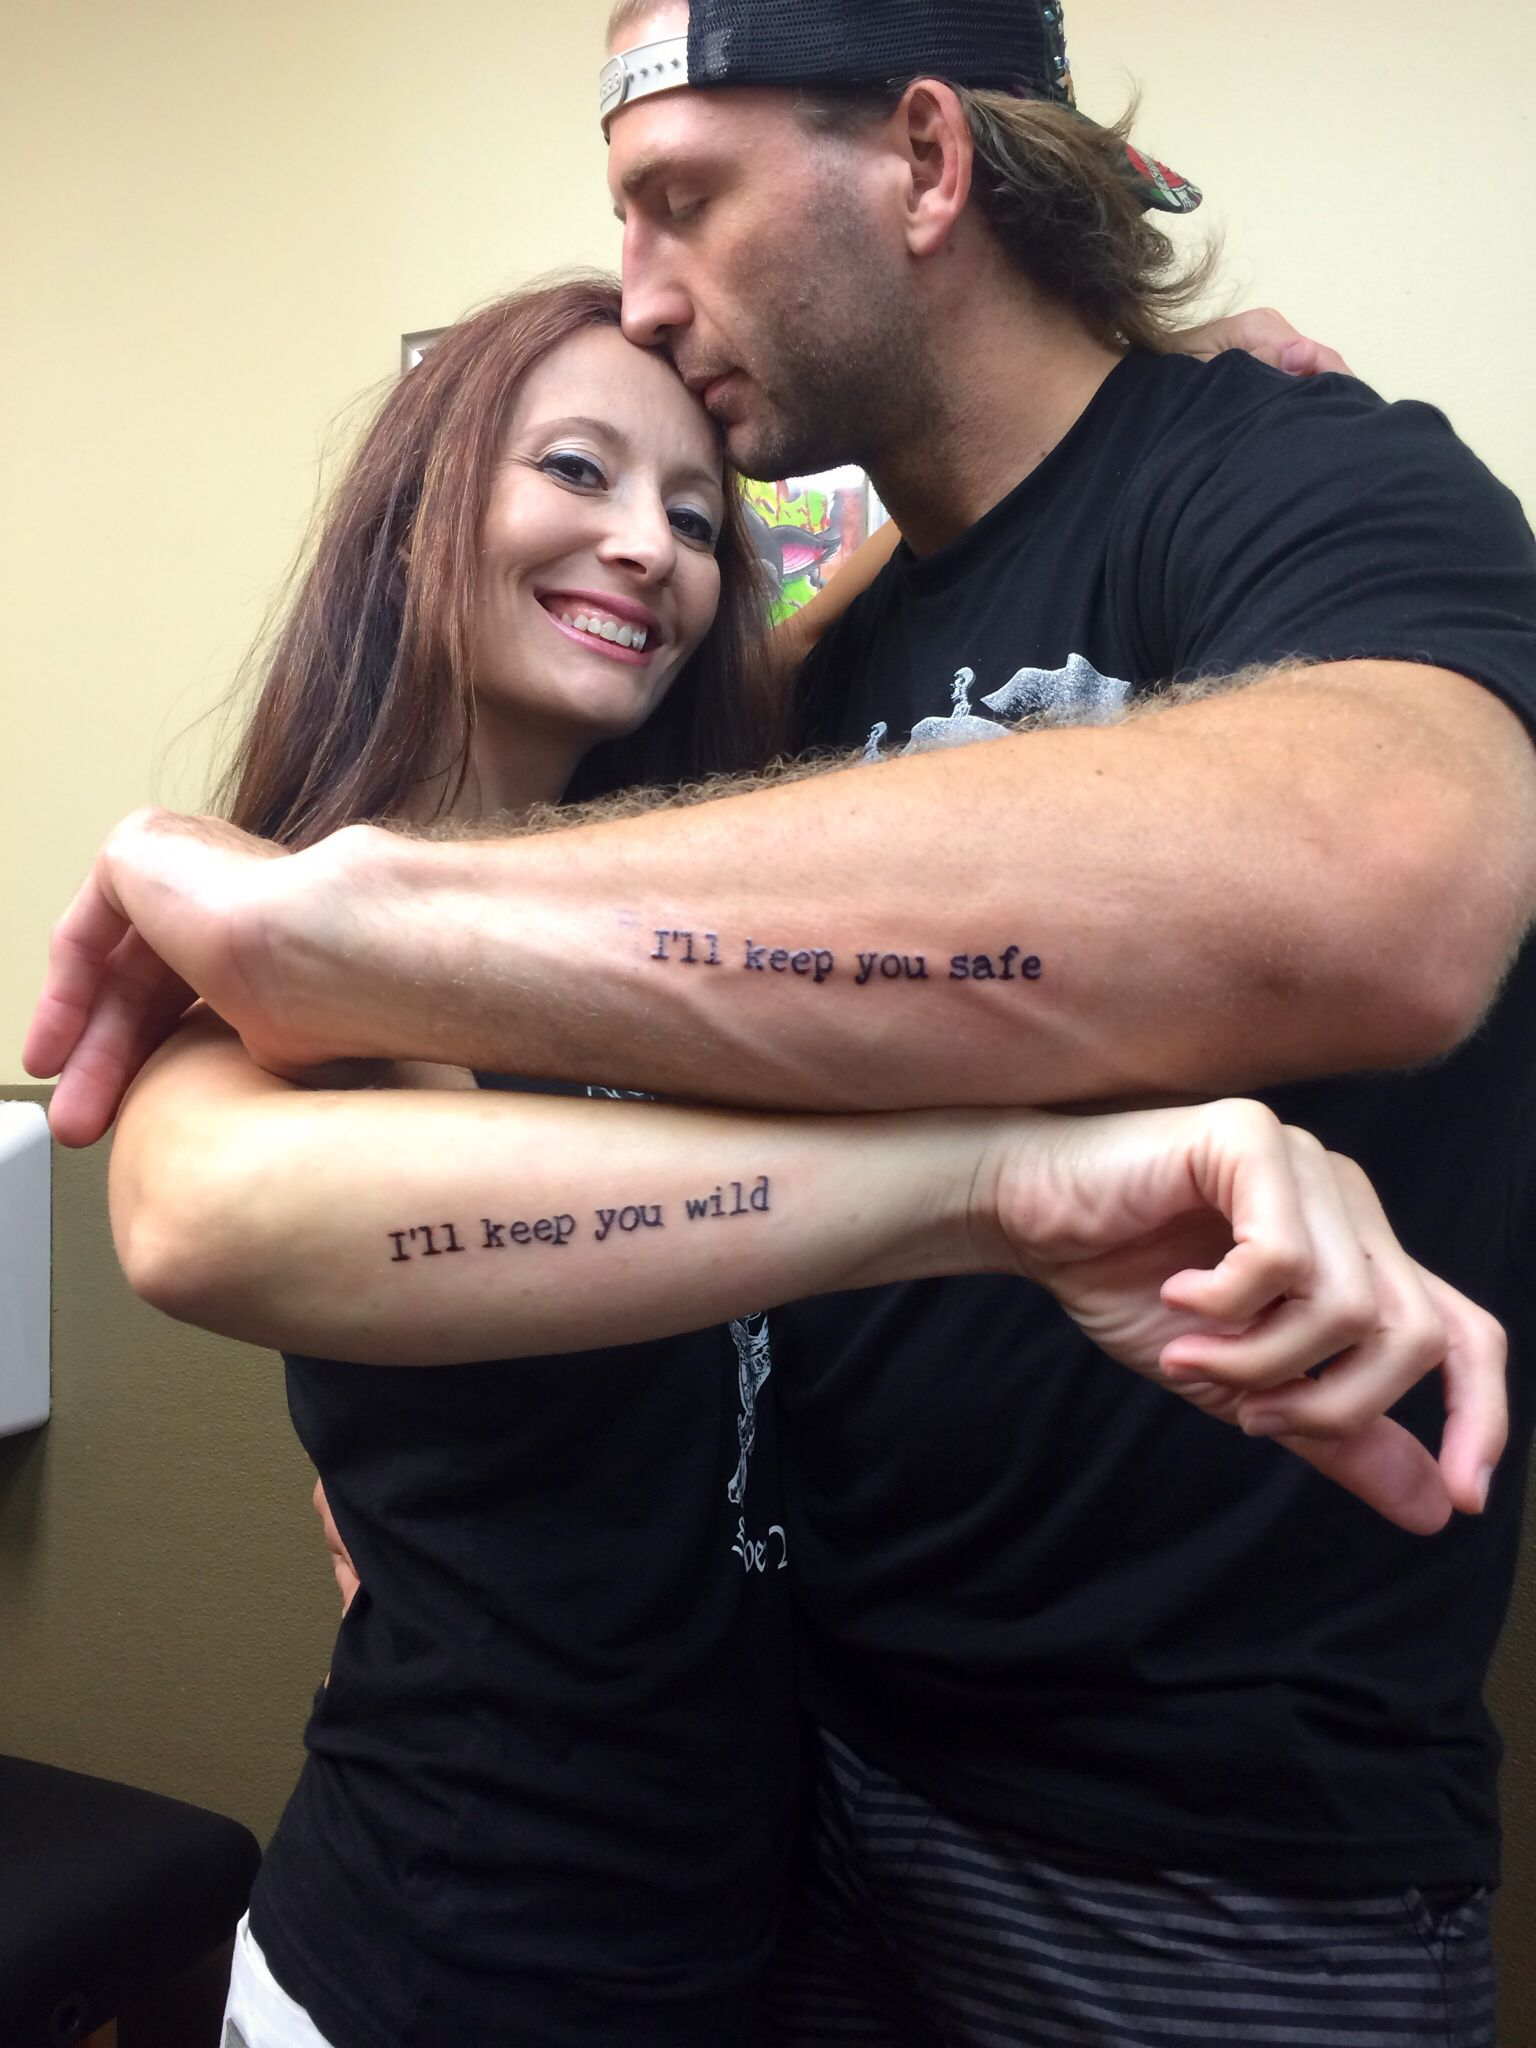 21 Couple Tattoos Ideas Subtle Meaningful Tattoos For Couples Romantic Couples Tattoos Married Couple Tattoos